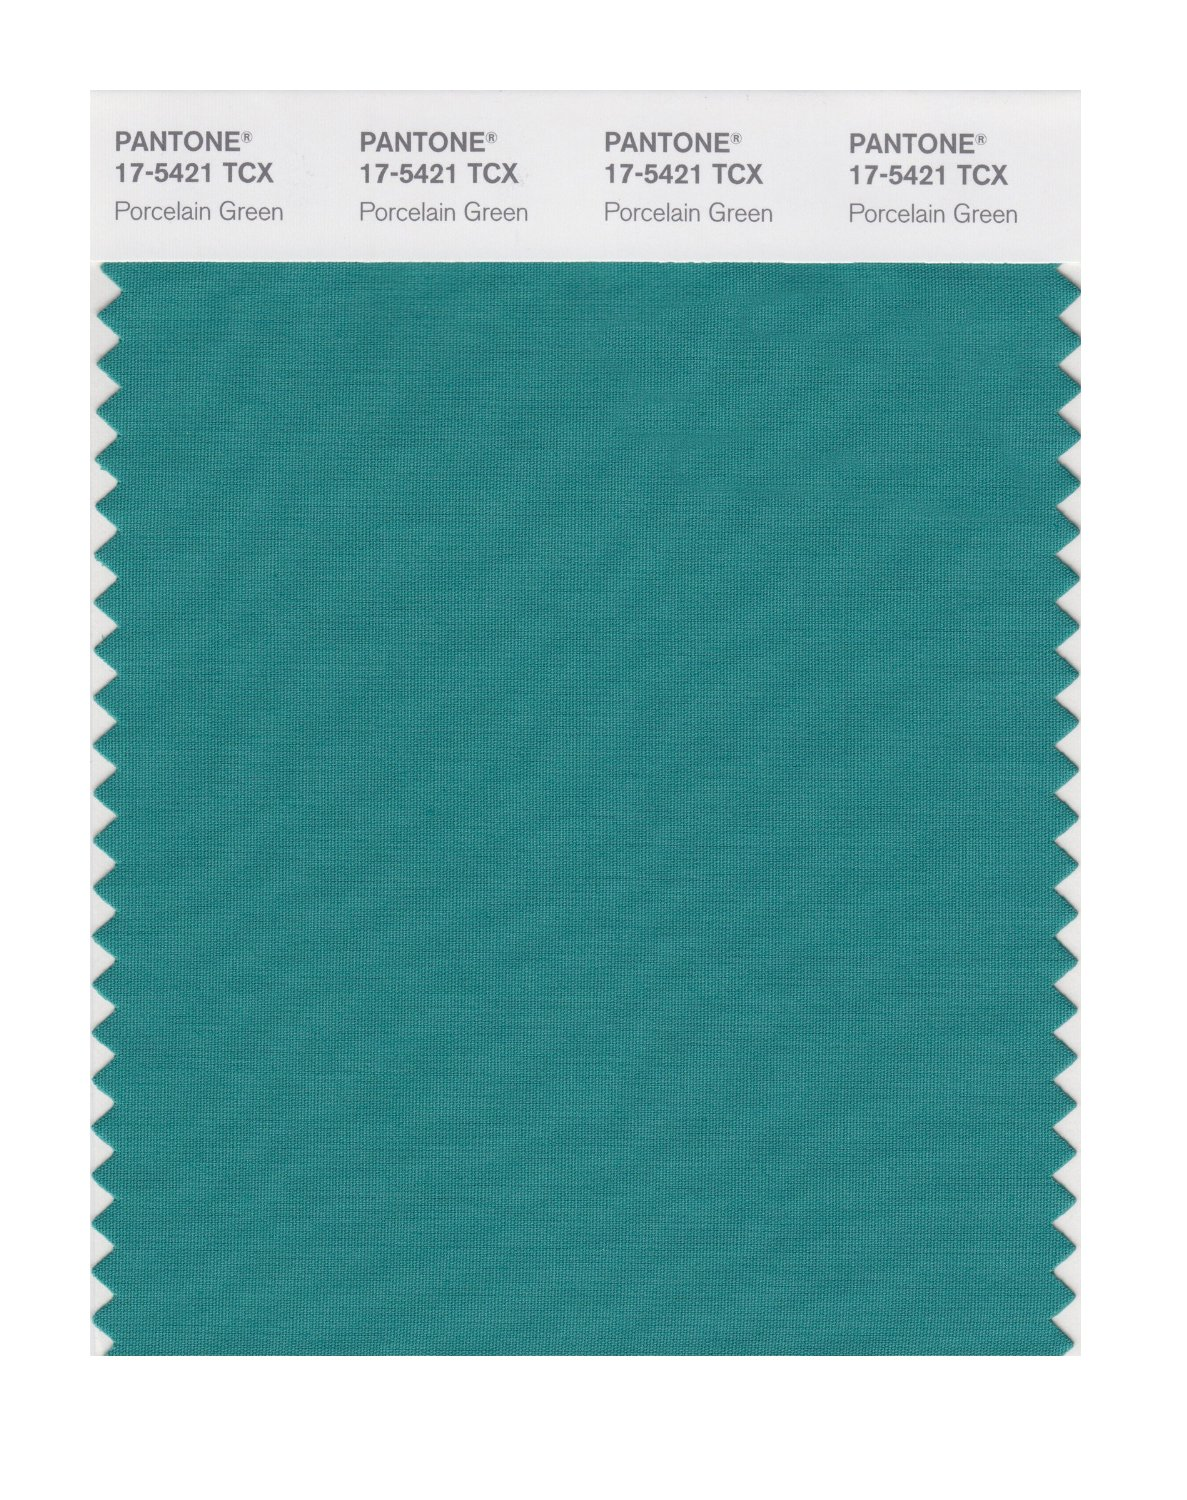 Pantone Smart Swatch 17-5421 Porcelain Green